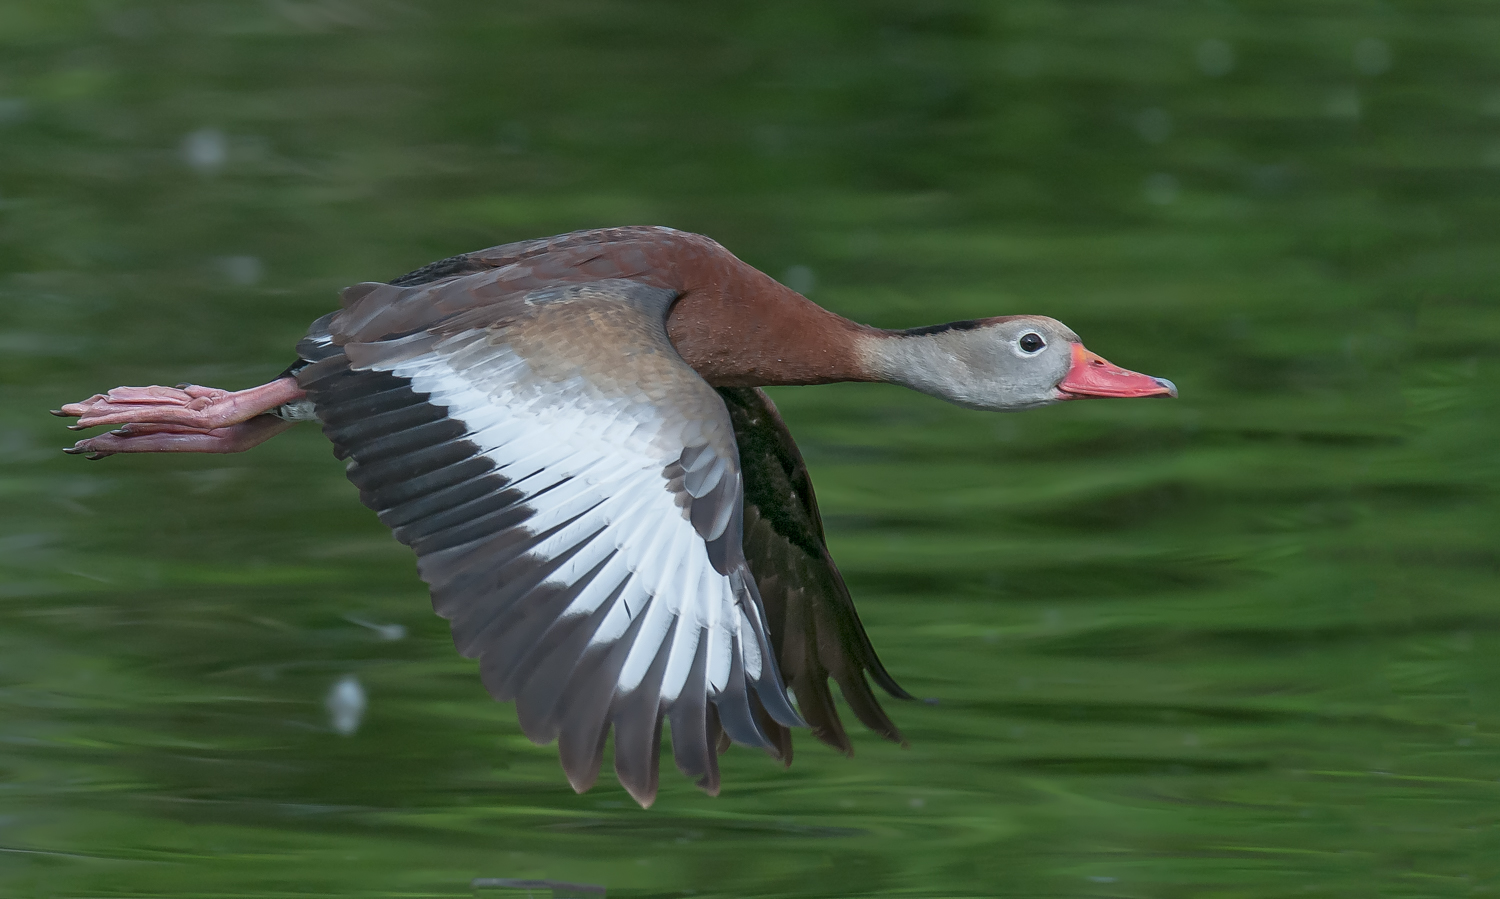 Black-bellied Whistling Duck, New Orleans (LA), March 2012